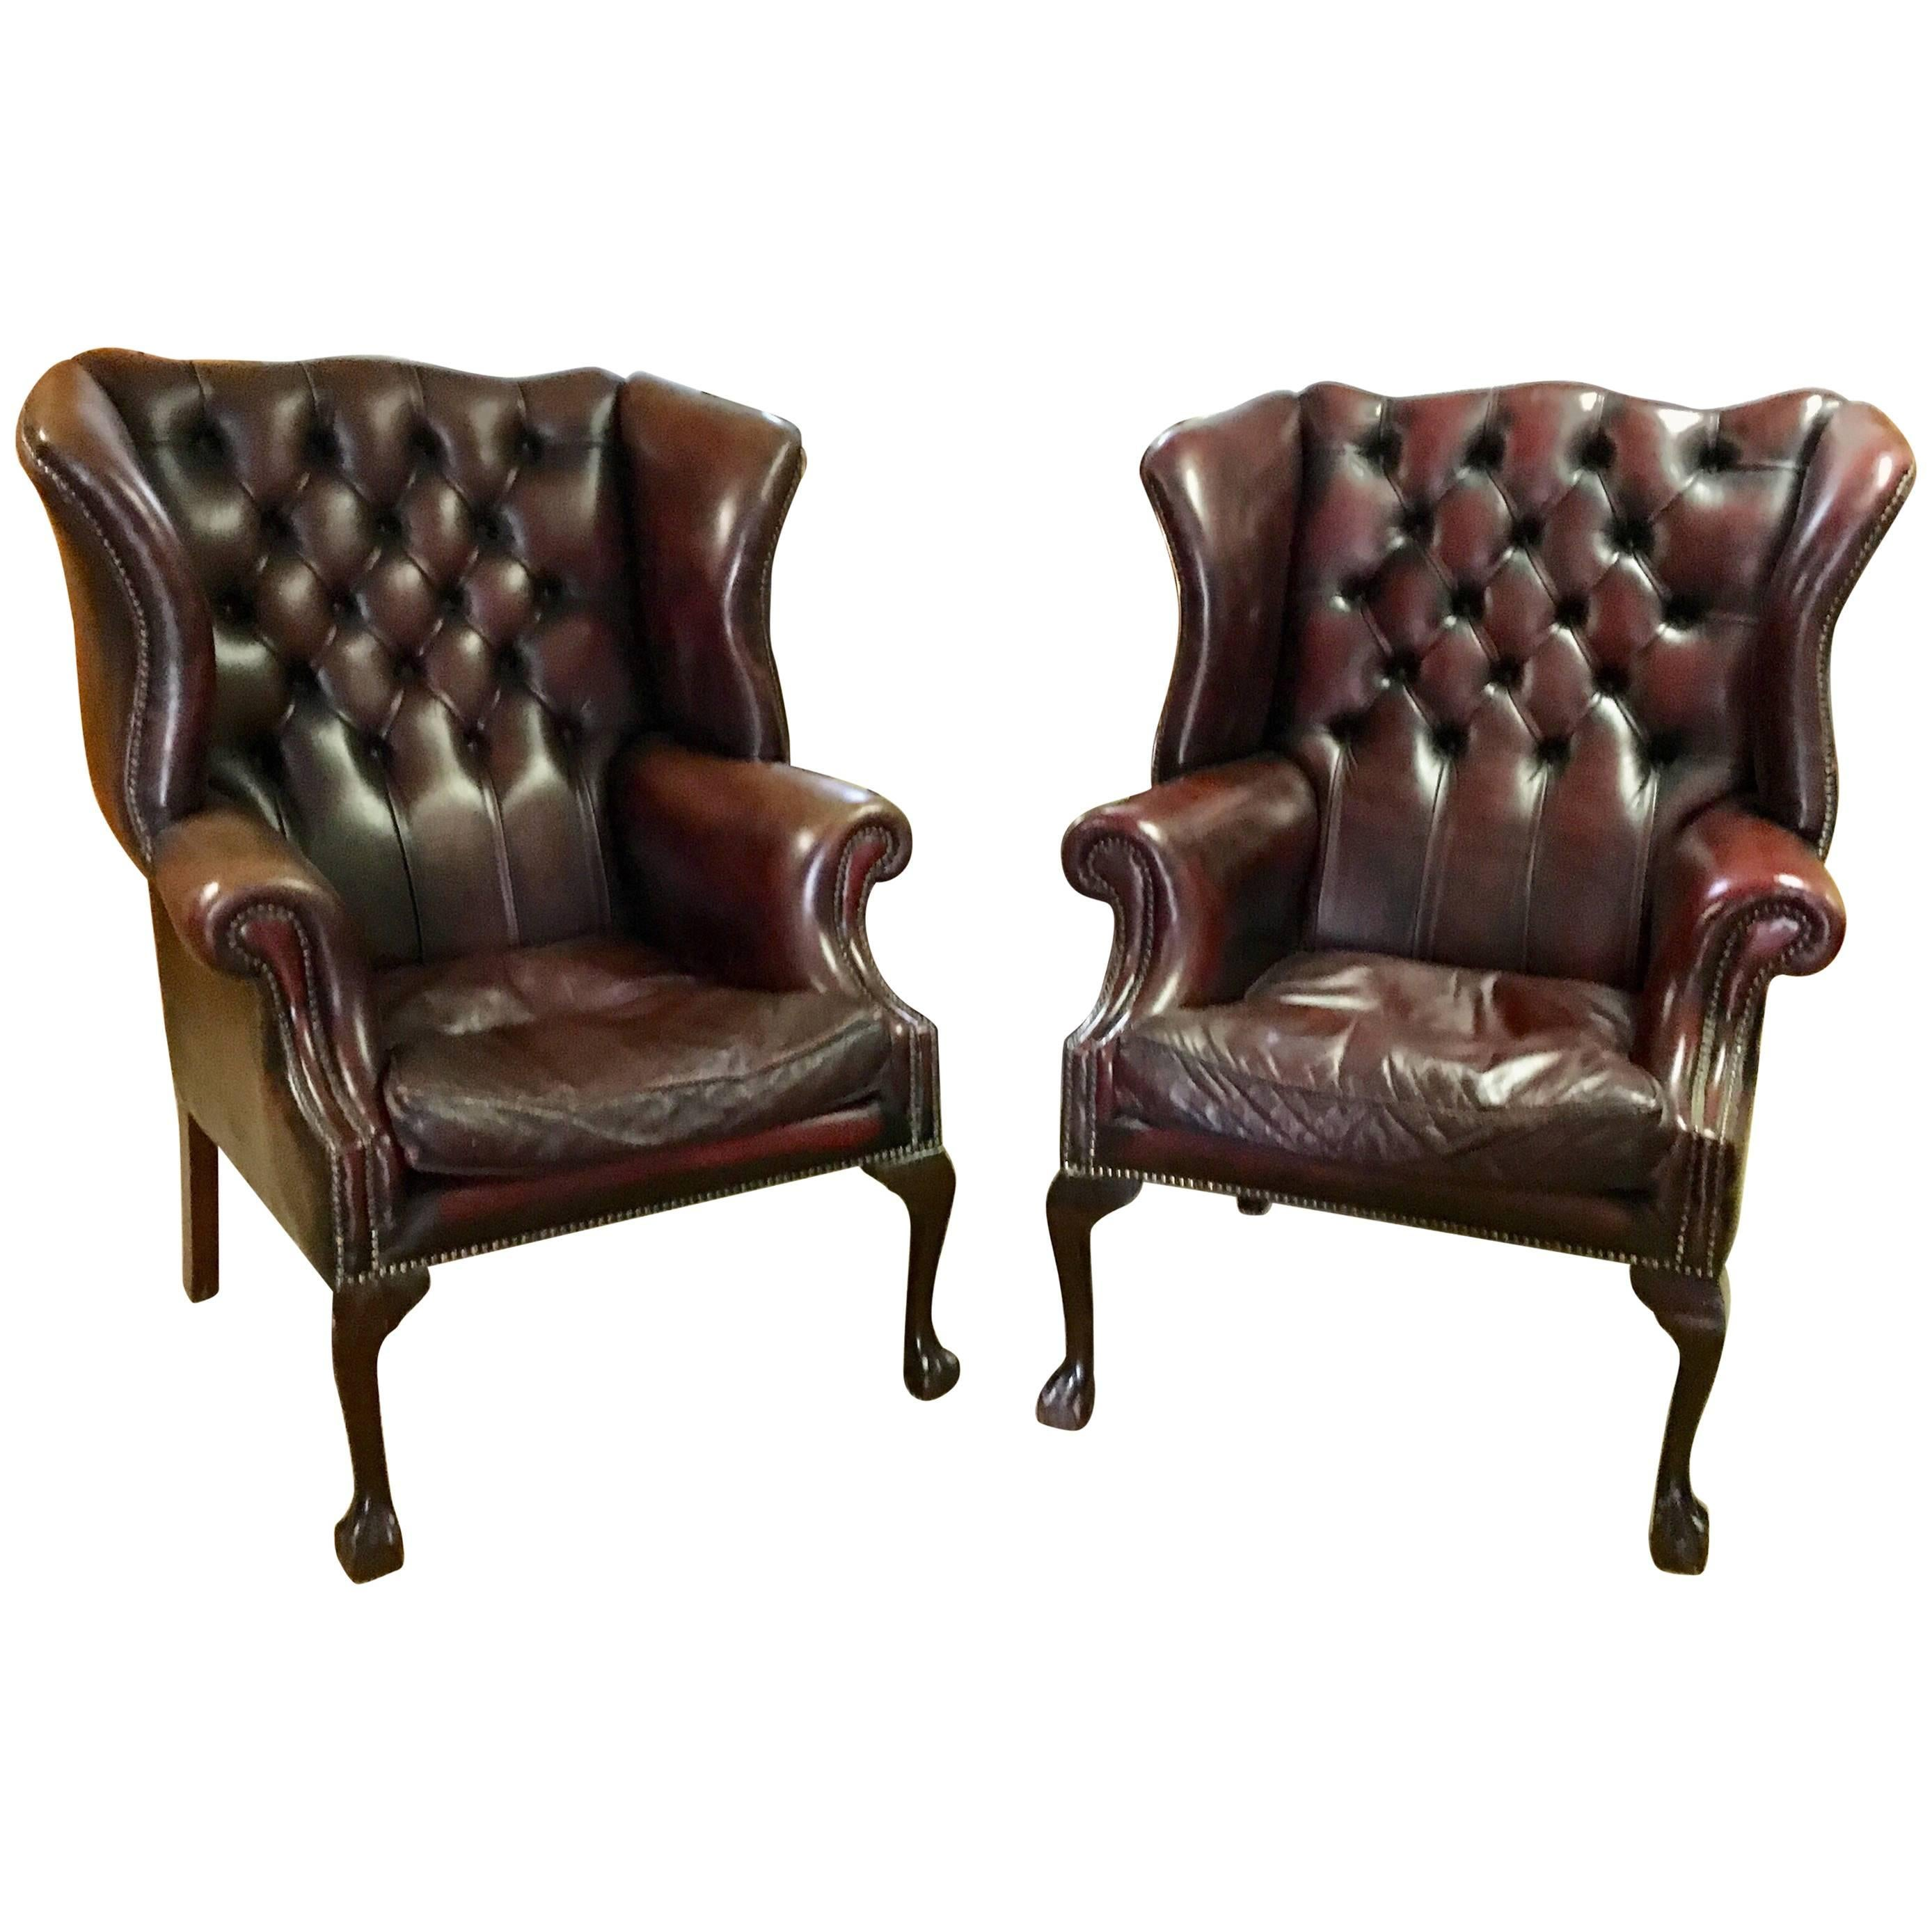 Tufted Leather Wingback Library Chairs with Nailhead Accents For Sale  sc 1 st  1stDibs & Tufted Leather Wingback Library Chairs with Nailhead Accents For ...